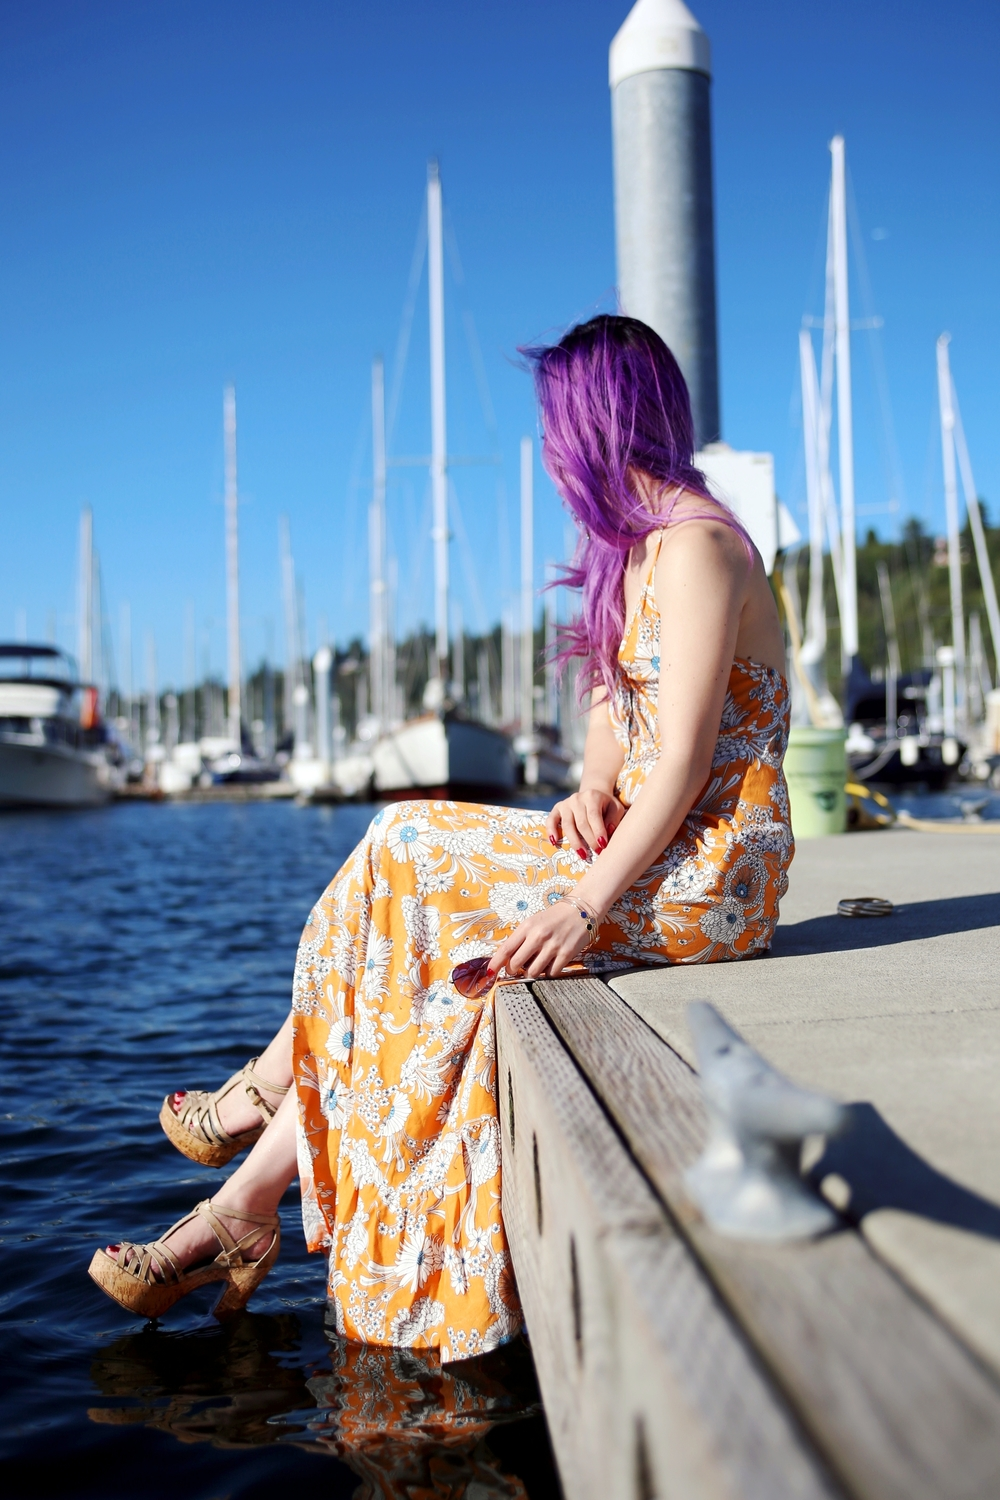 Target x Mady by MINKPINK Floral Halter Maxi Dress_H&M 4-pack bracelets_ALDO Platform Sandals_Ray Ban Blue Aviator Sunglasses_Aikas Love Closet_Seattle Fashion Blogger From Japan_Purple hair_Mermaid Hair